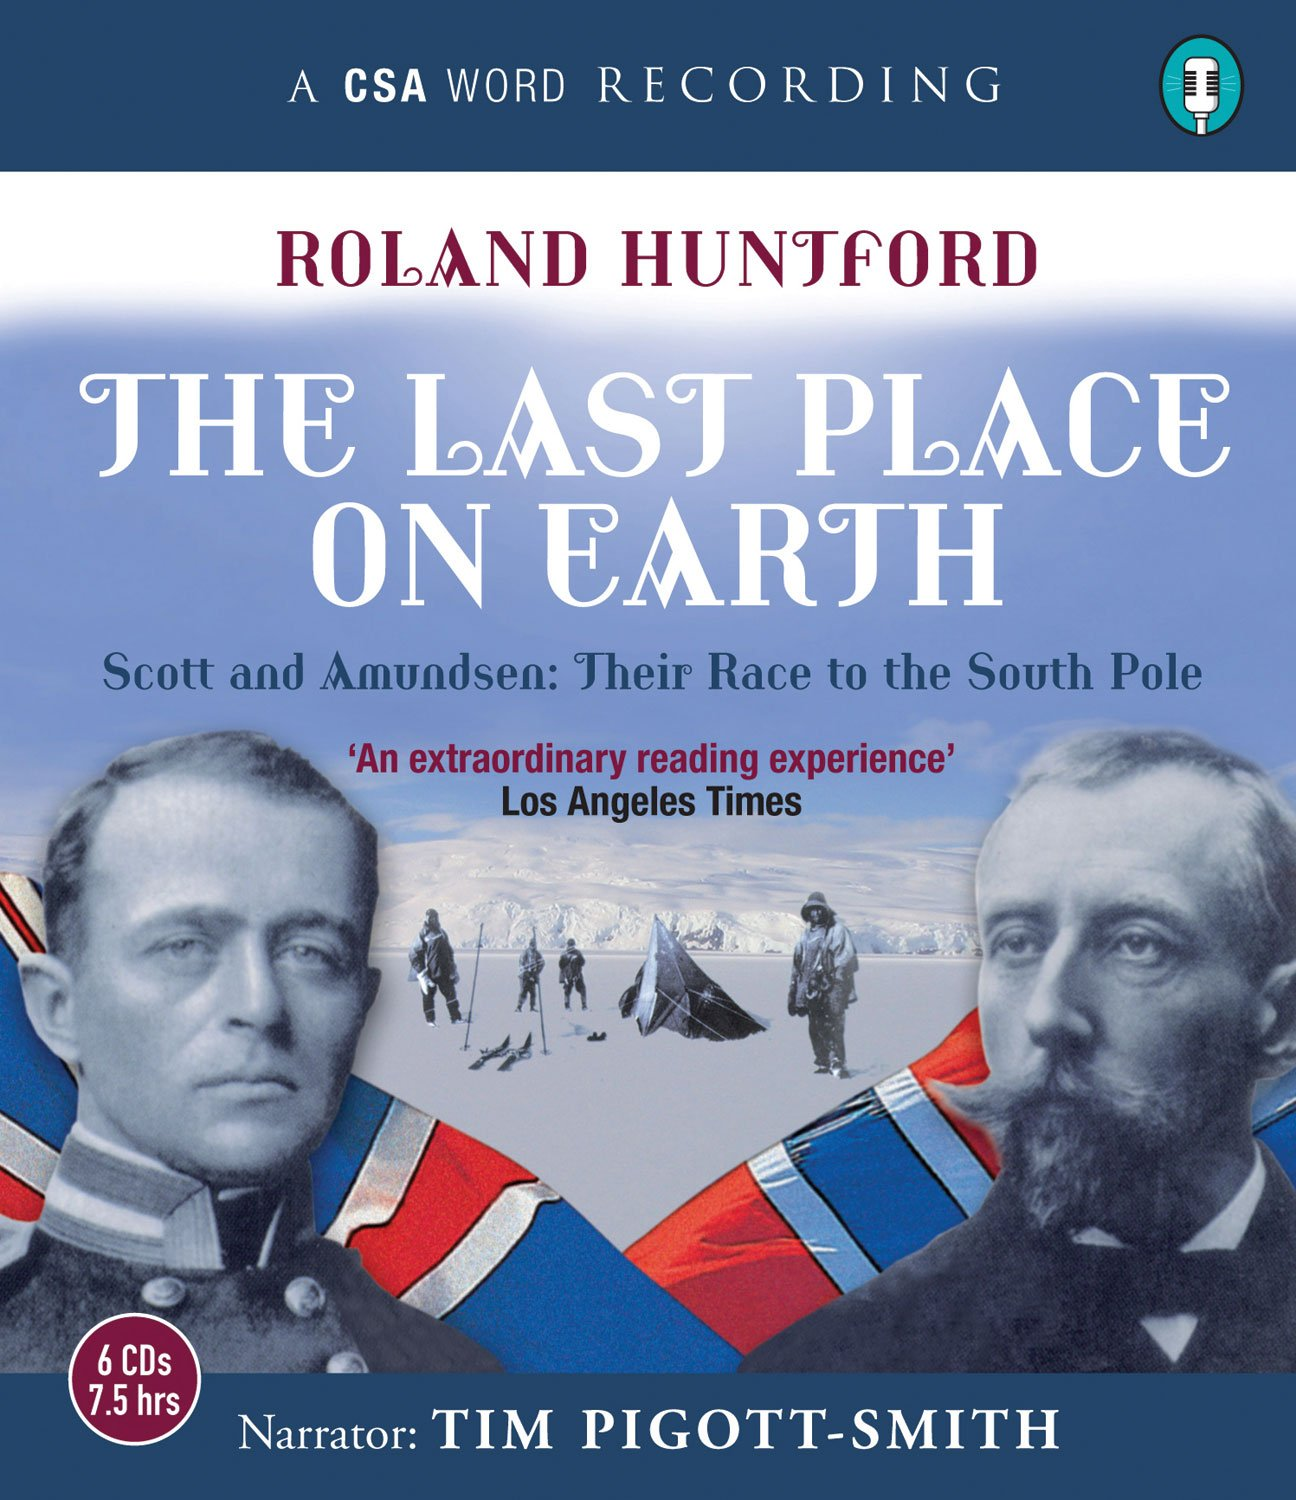 Last Place On Earth: Scott and Amundsen: Their Race to the South Pole (A CSA Word Recording) by Brand: CSA Word